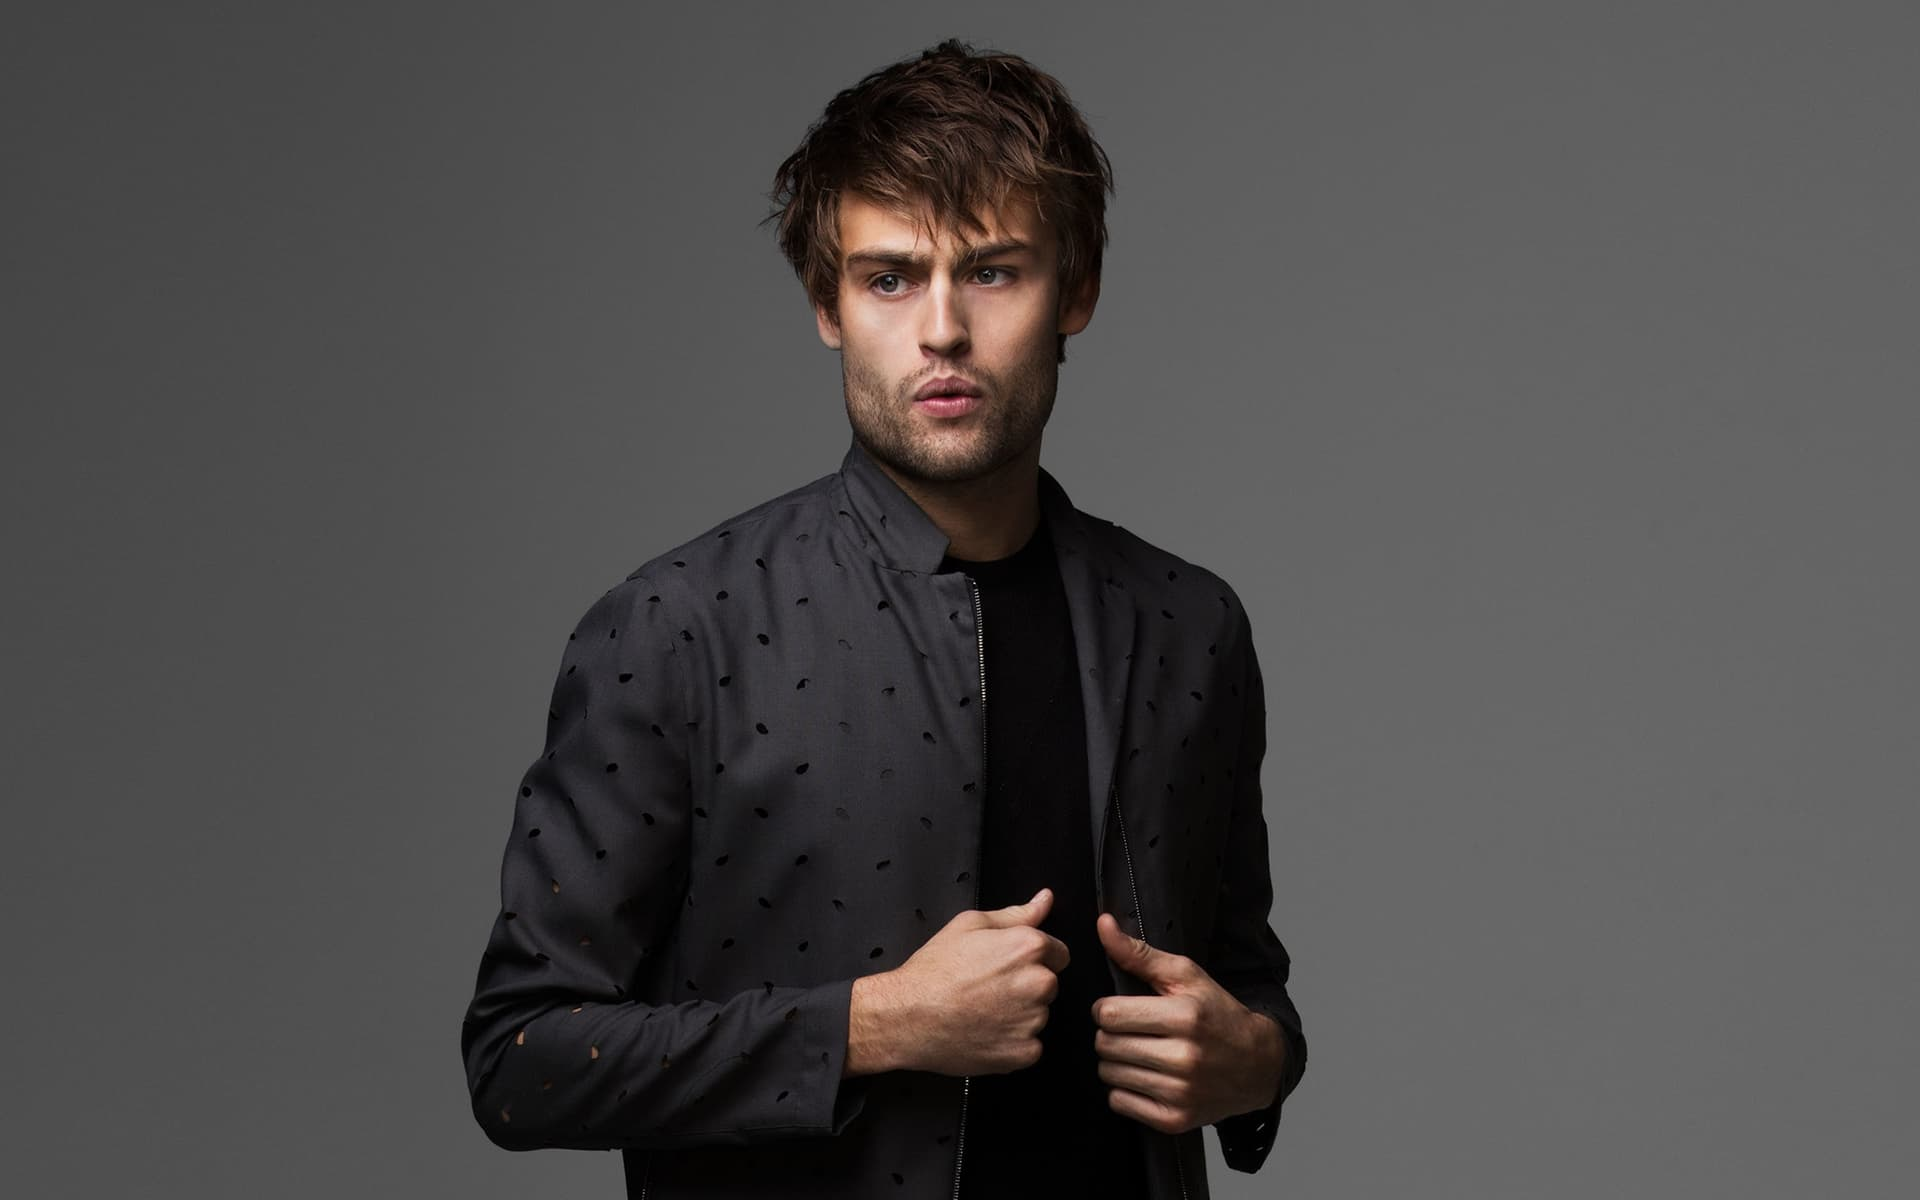 Douglas Booth style wallpaper 1080p High Definition